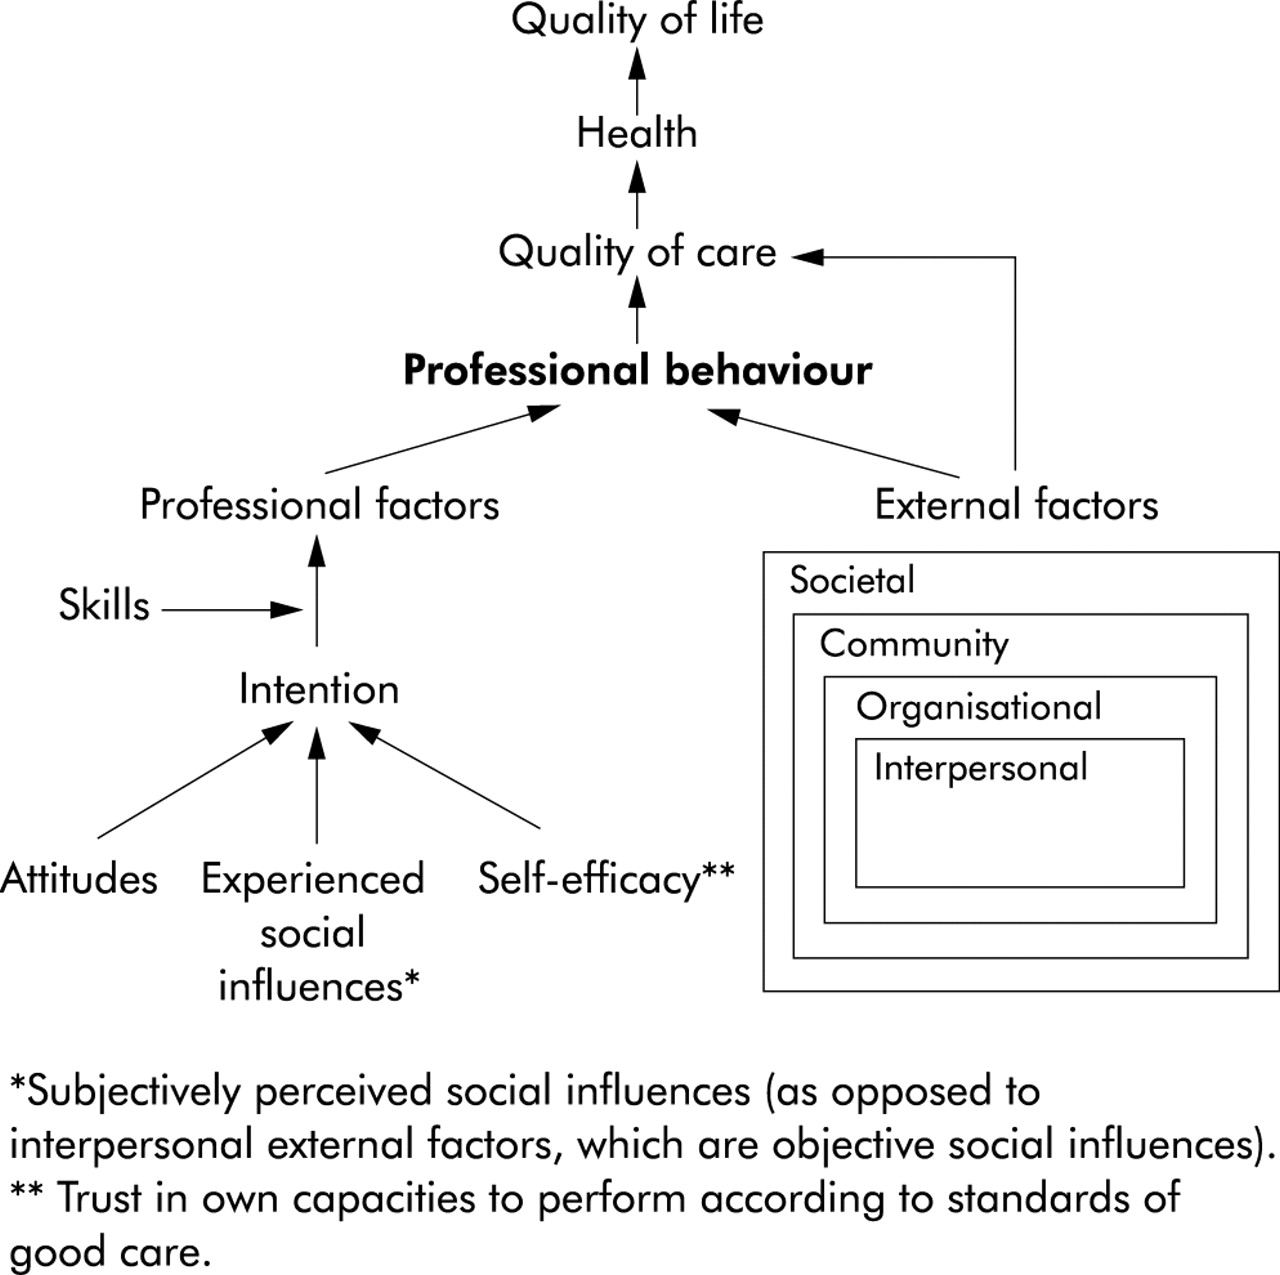 Analyse potential barriers to proffesional development